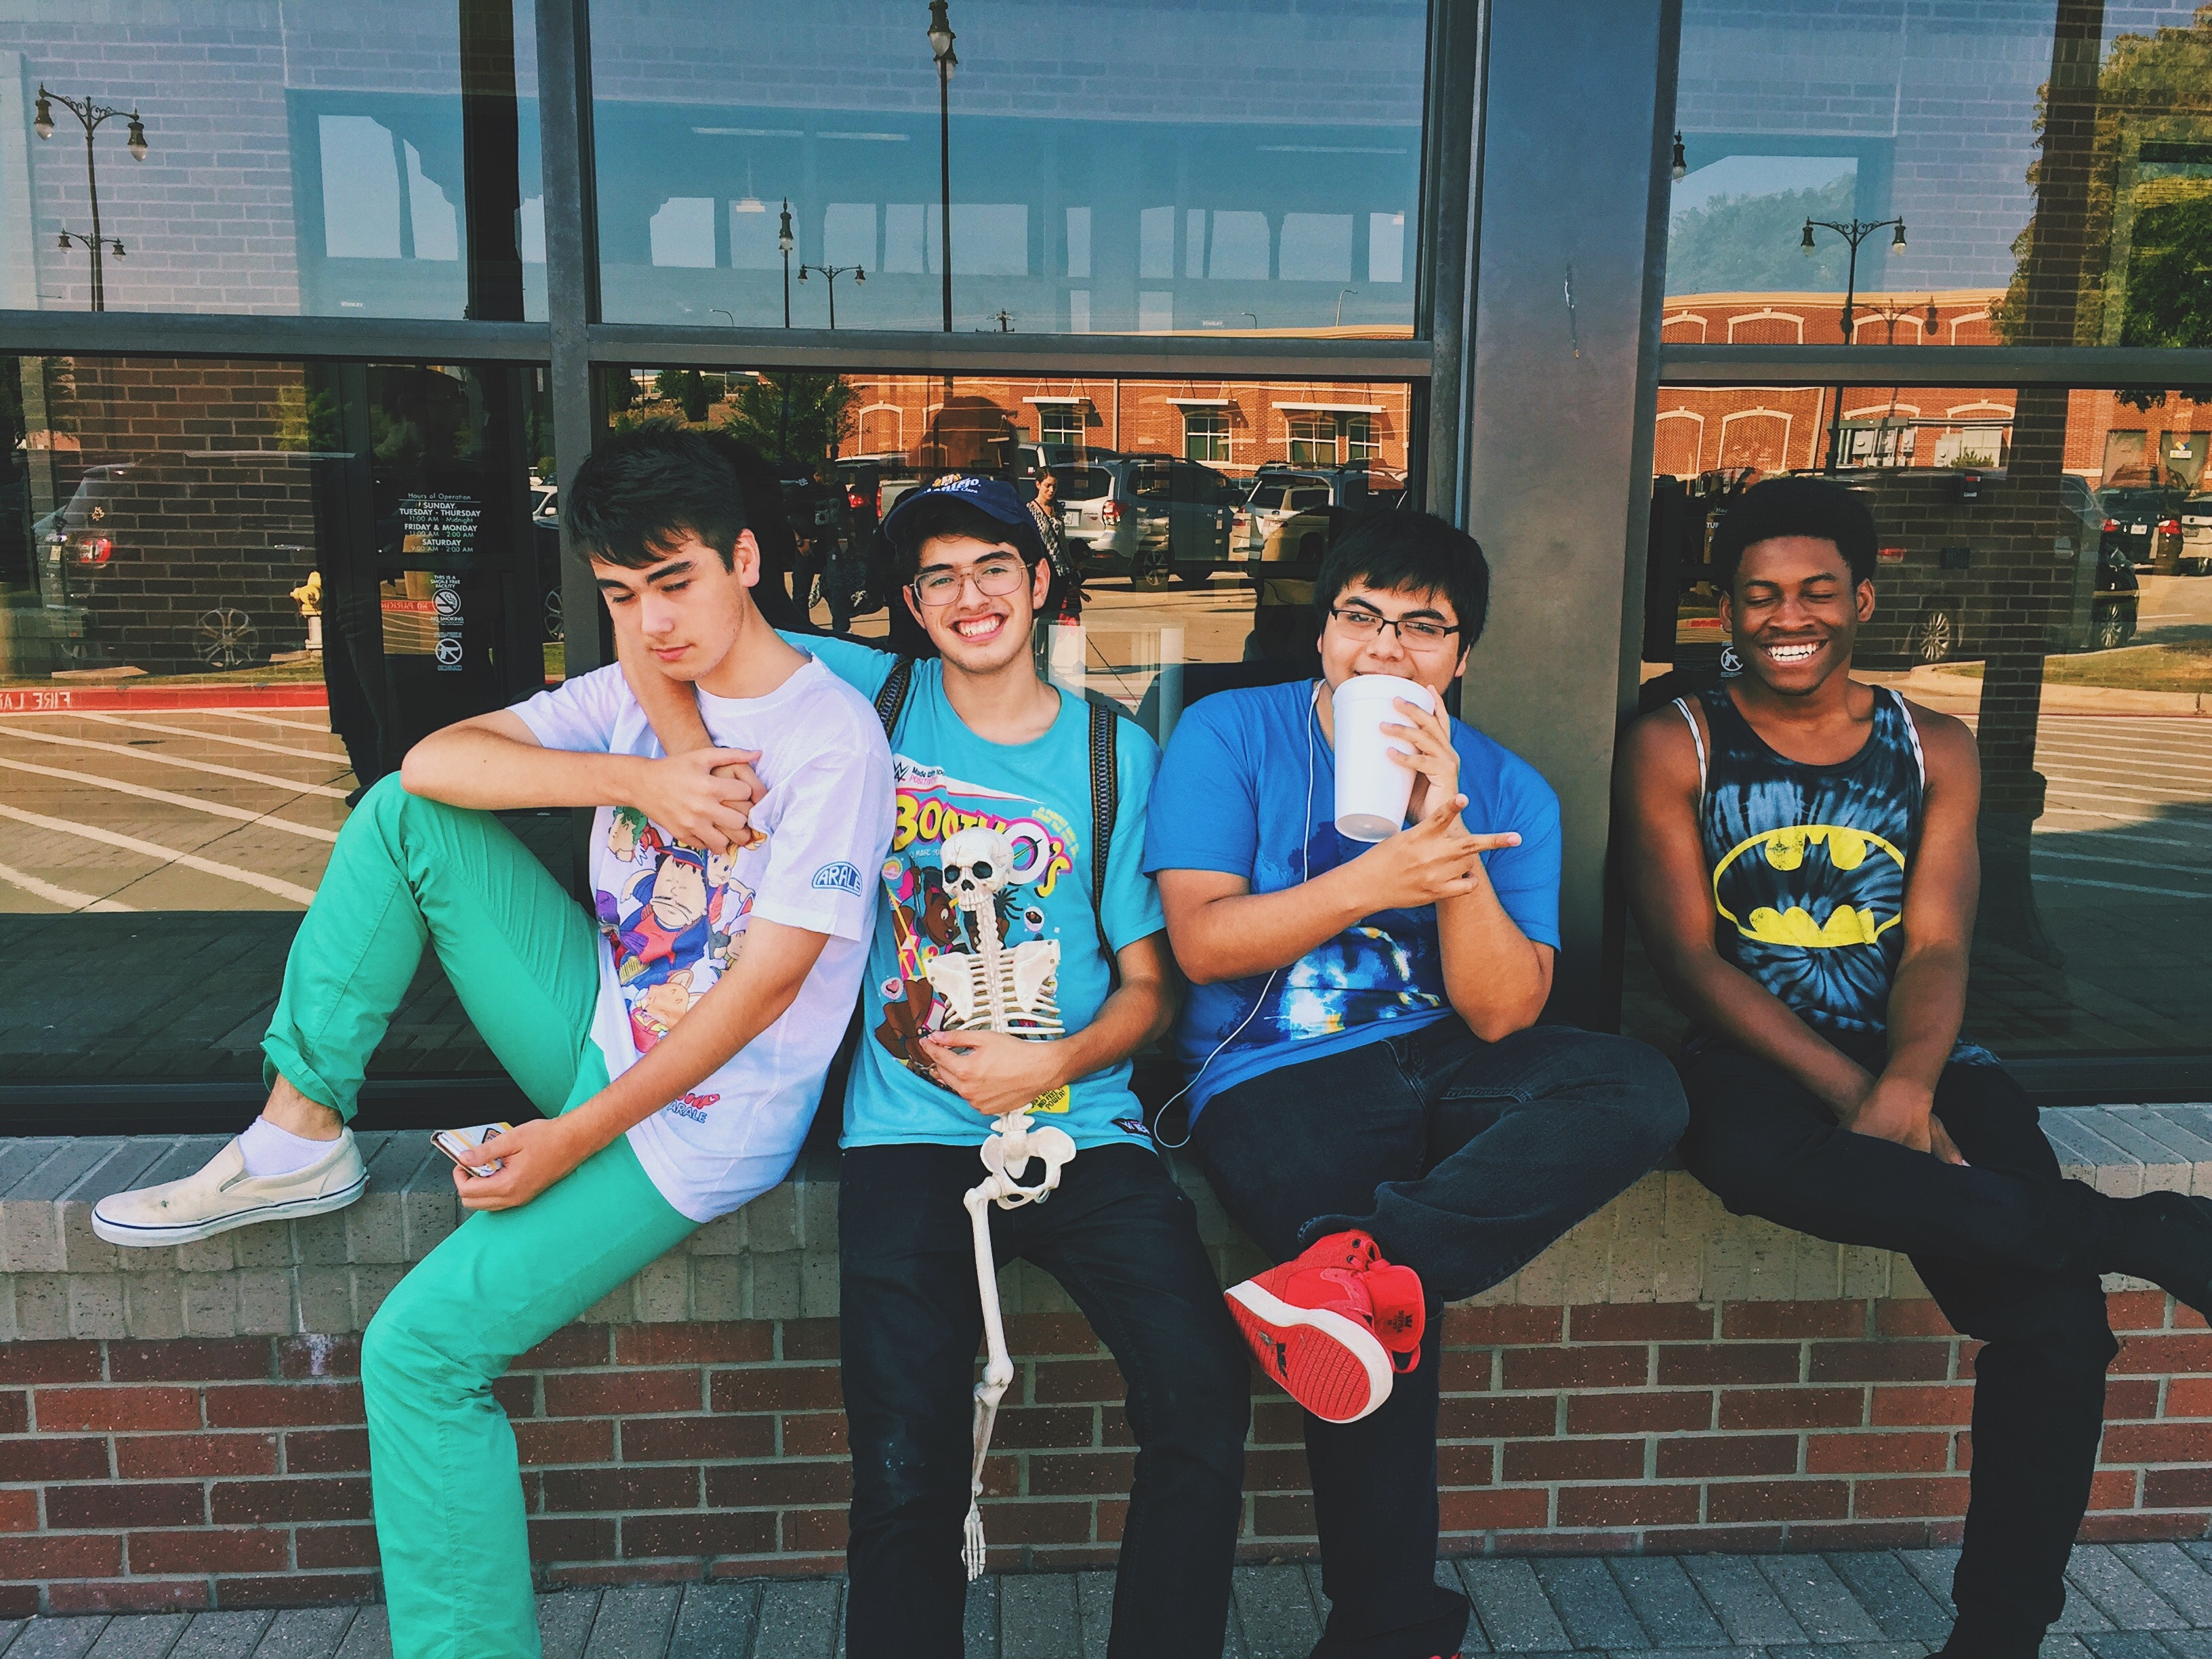 four masc-presenting folks of various skin tones hang out